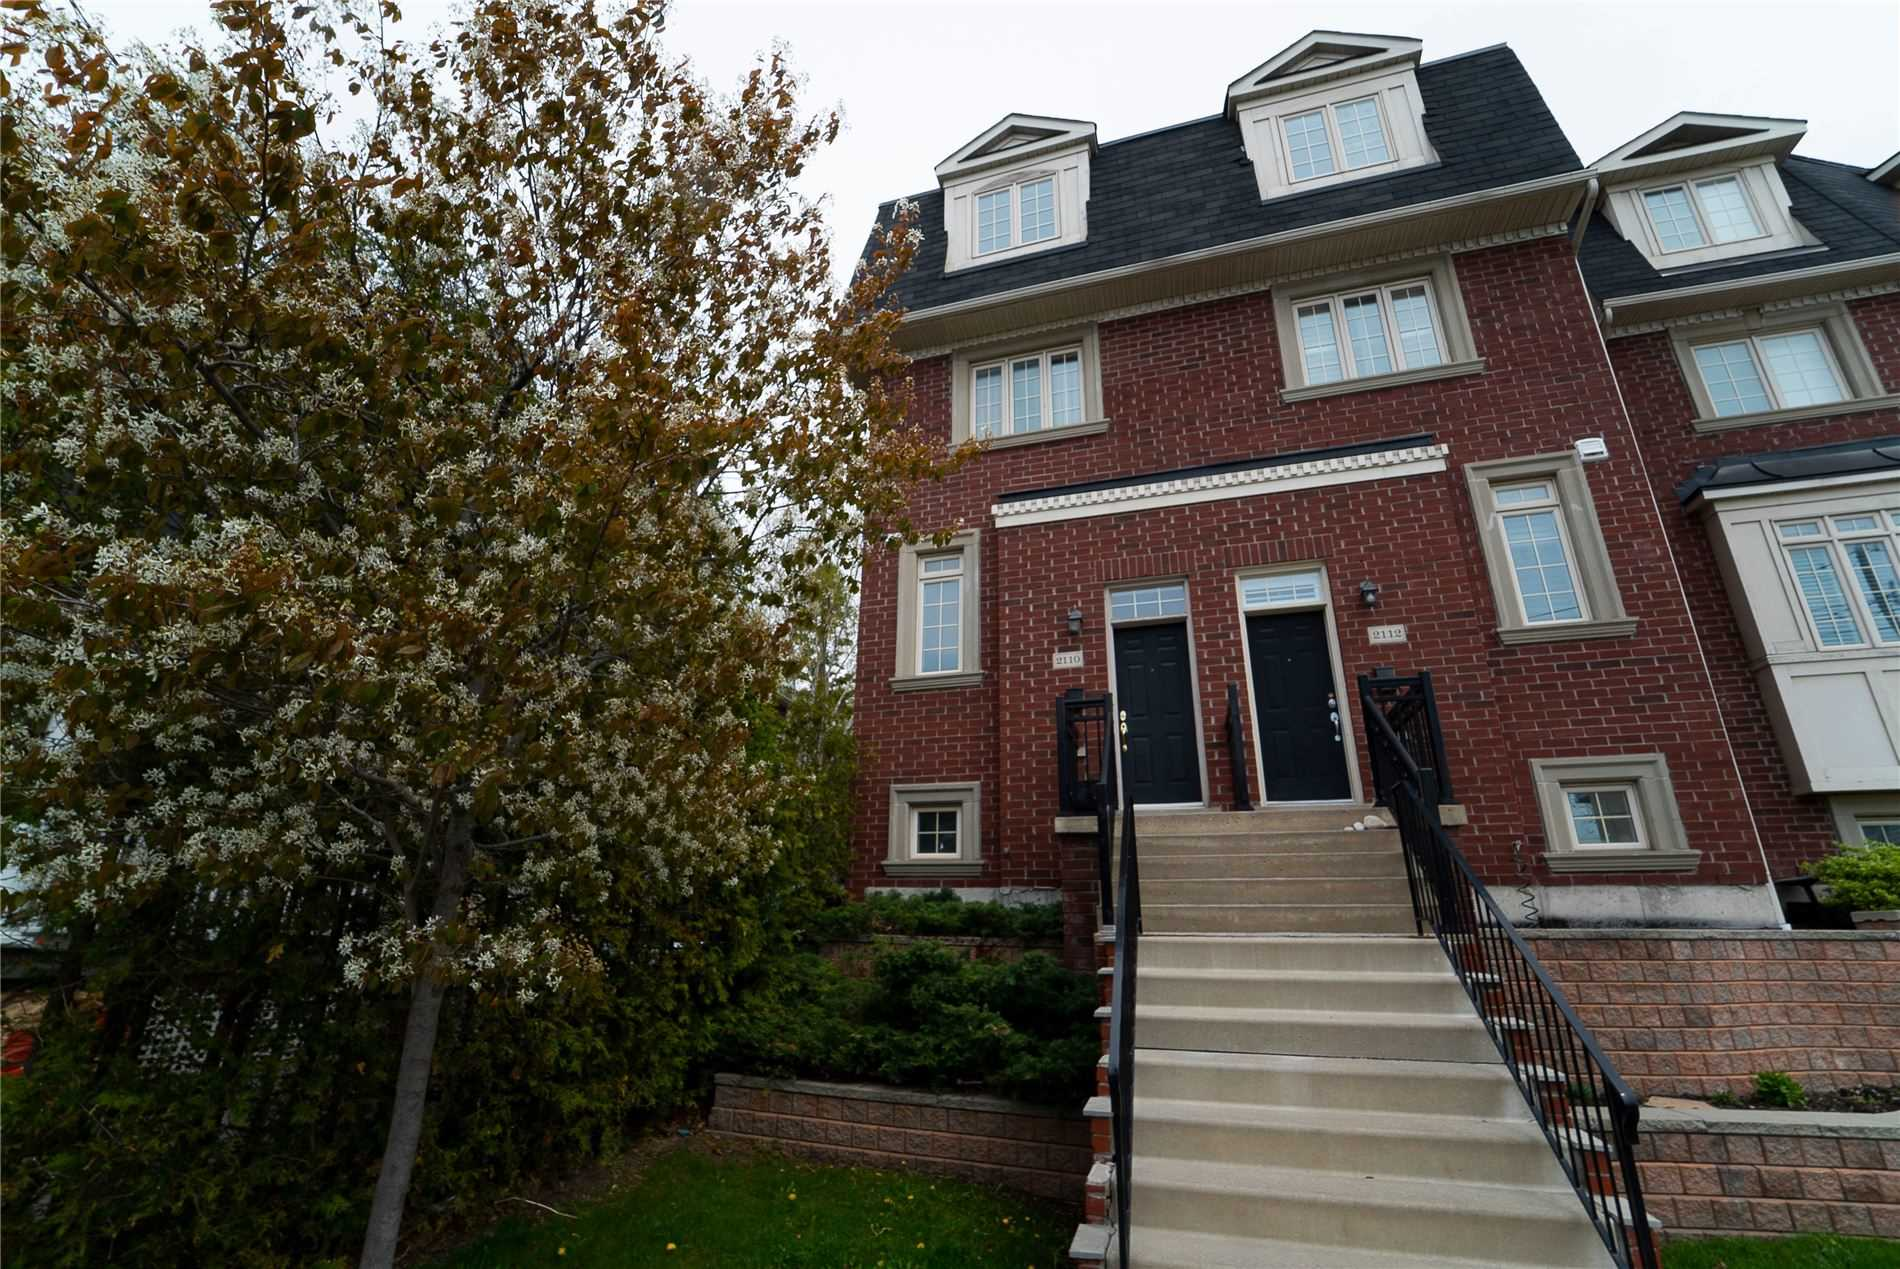 Spacious Executive Townhouse Features Hardwood Floors Throughout, Modern Kitchen, 9 Ft Ceilings On Main Floor, 2nd Floor Laundry And Master Bedroom With Large En-Suite. 3rd Floor Deck. Minutes To Downtown, Steps To Ttc, Walking Distance To The Beach, 81 Walk Score And 89 Transit Score! *1309 Sqft As Per Builder!